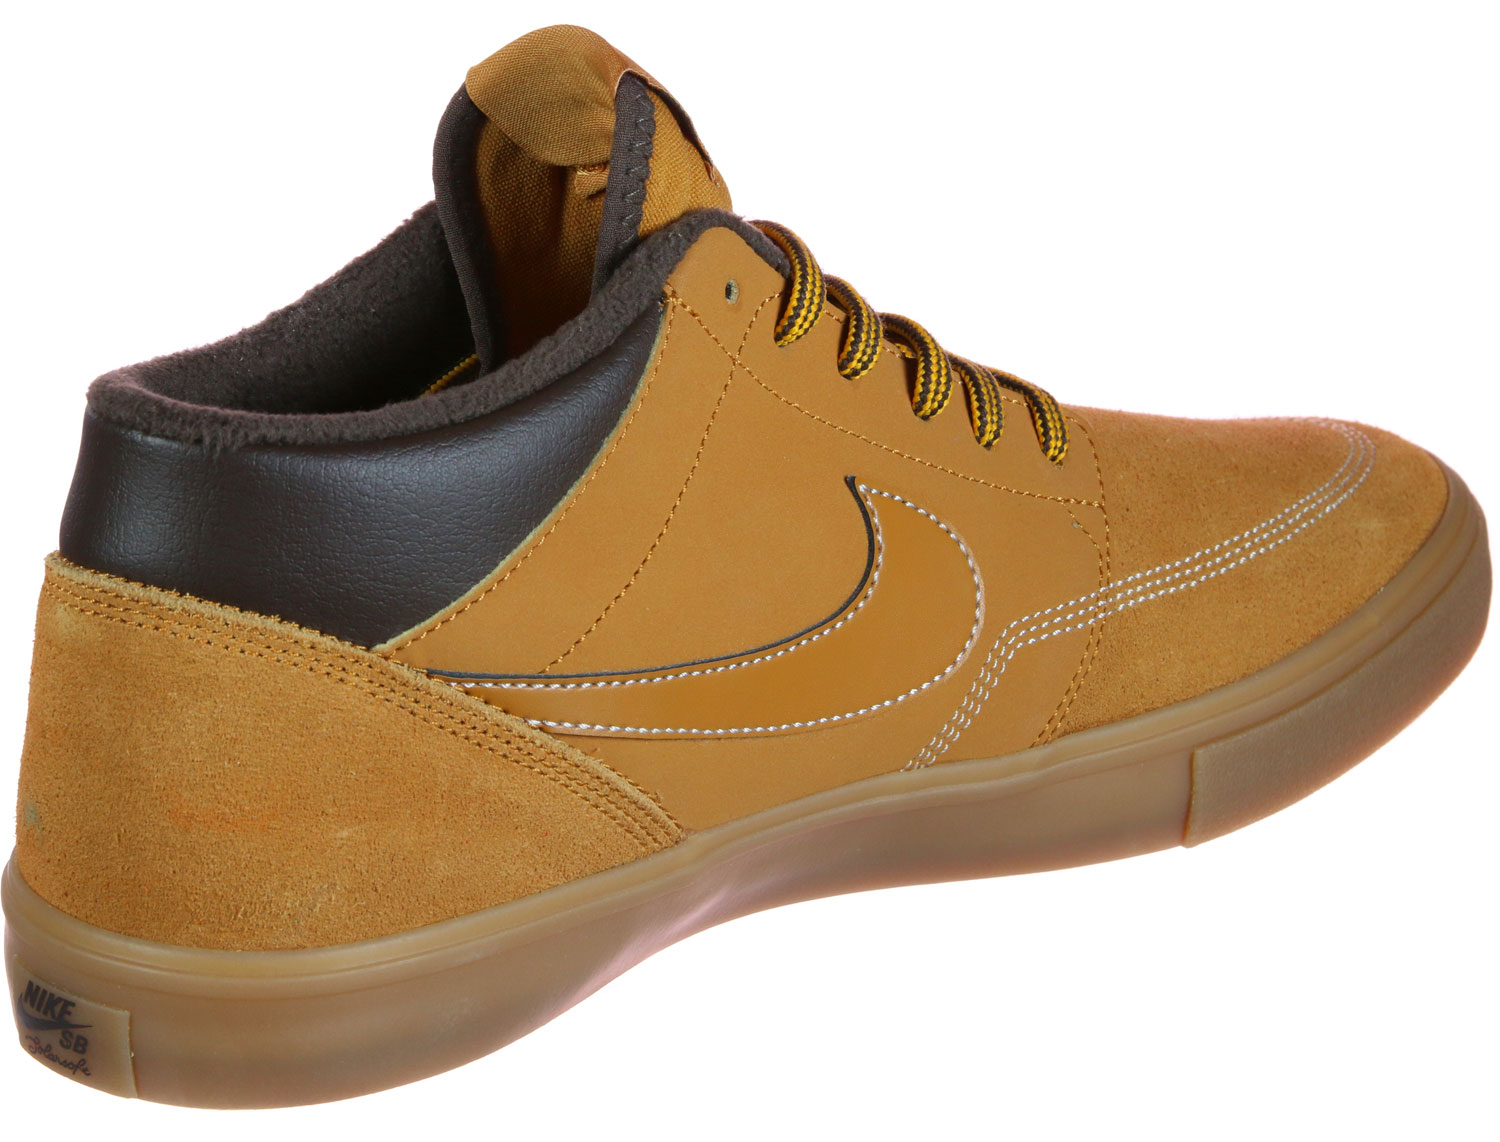 Tener un picnic volverse loco Nuez  Nike SB Portmore II Solarsoft Mid Bota - Sneakers Low at Stylefile